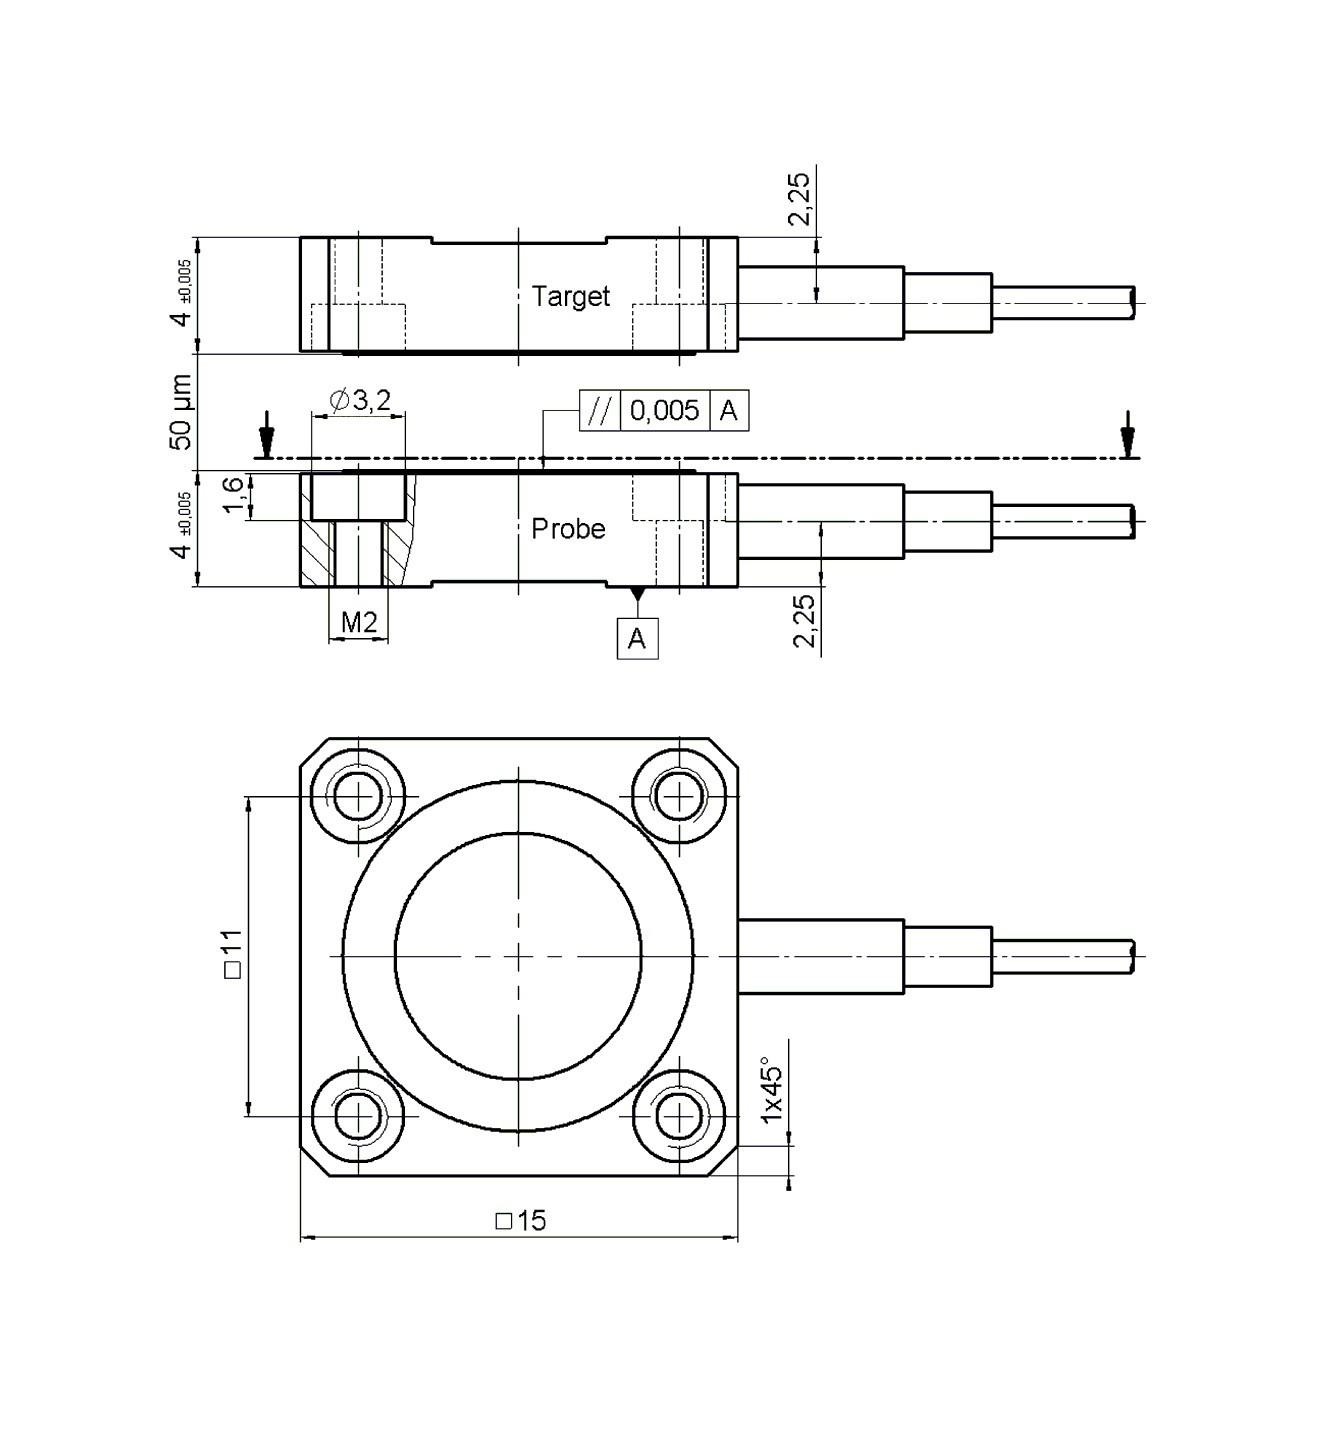 D 015 050 100 Capacitive Sensors Resistance Welding Block Diagram 05000 Dimensions In Mm